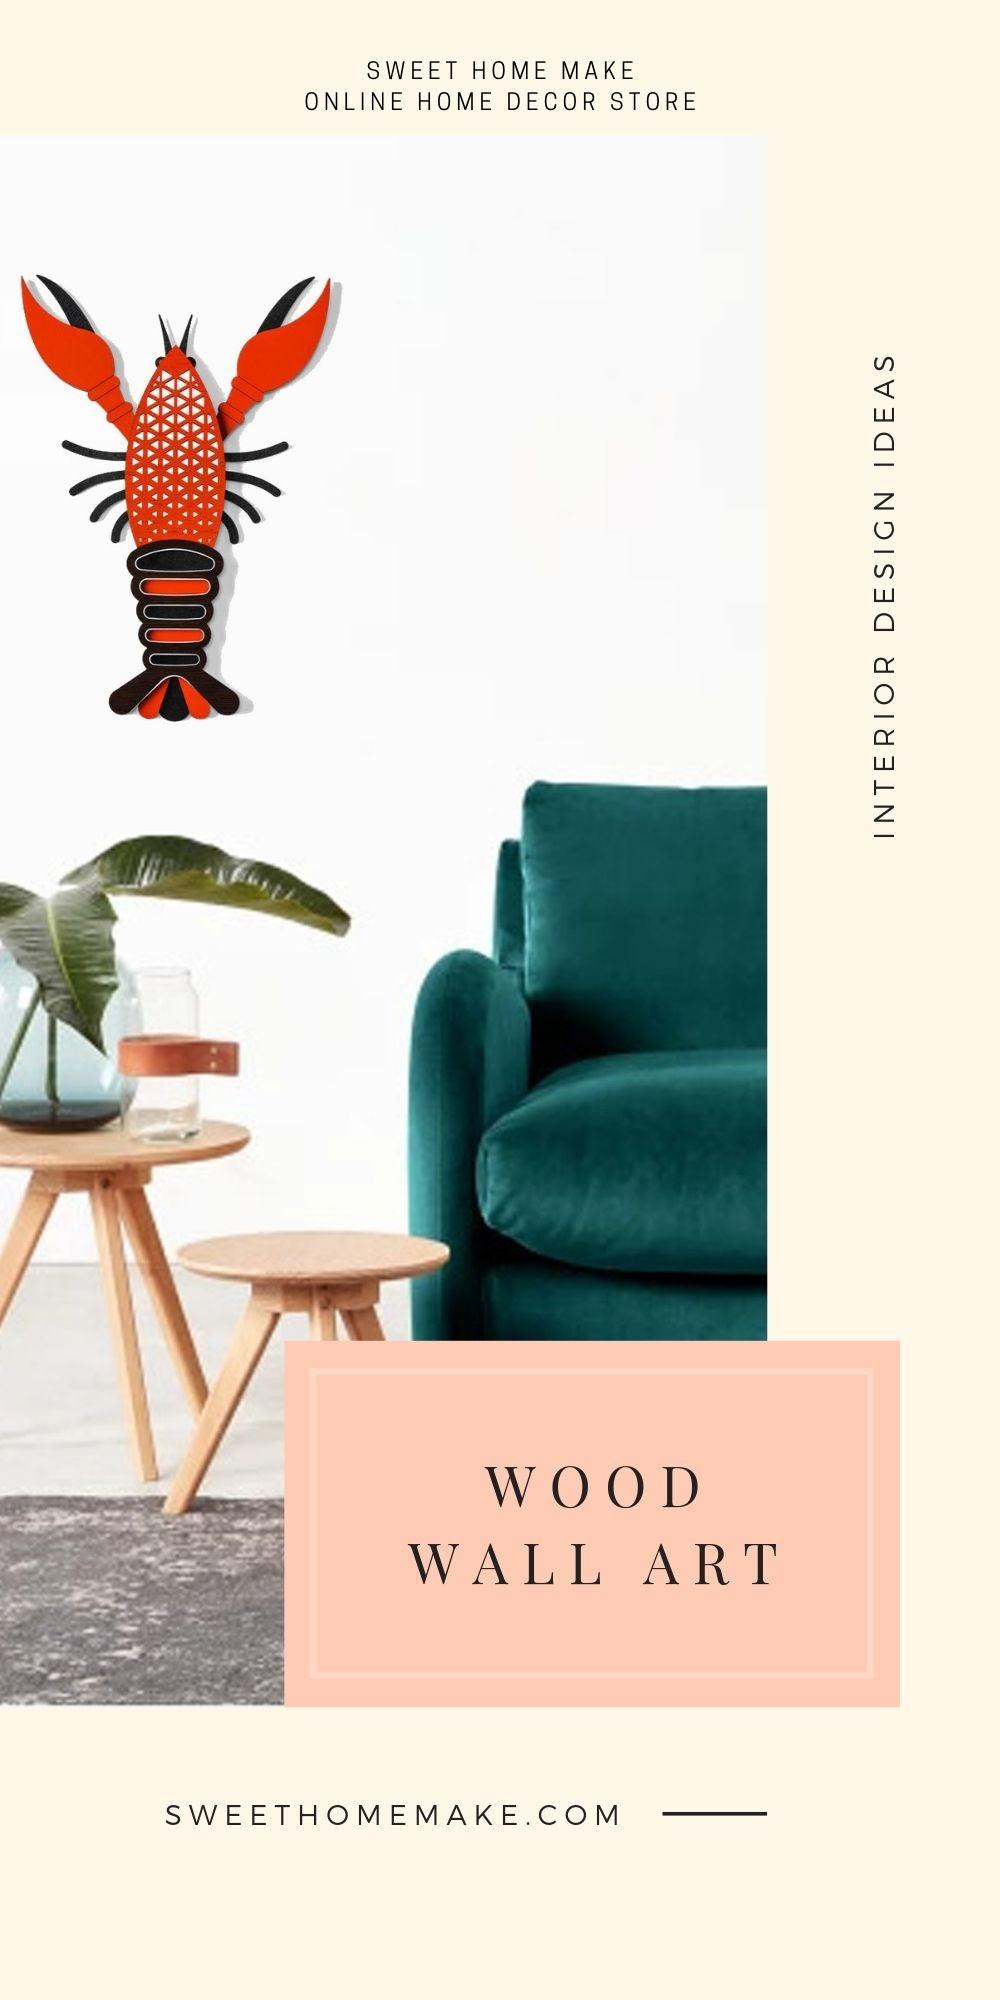 Lobster Wall Decor with Wood Wall Art